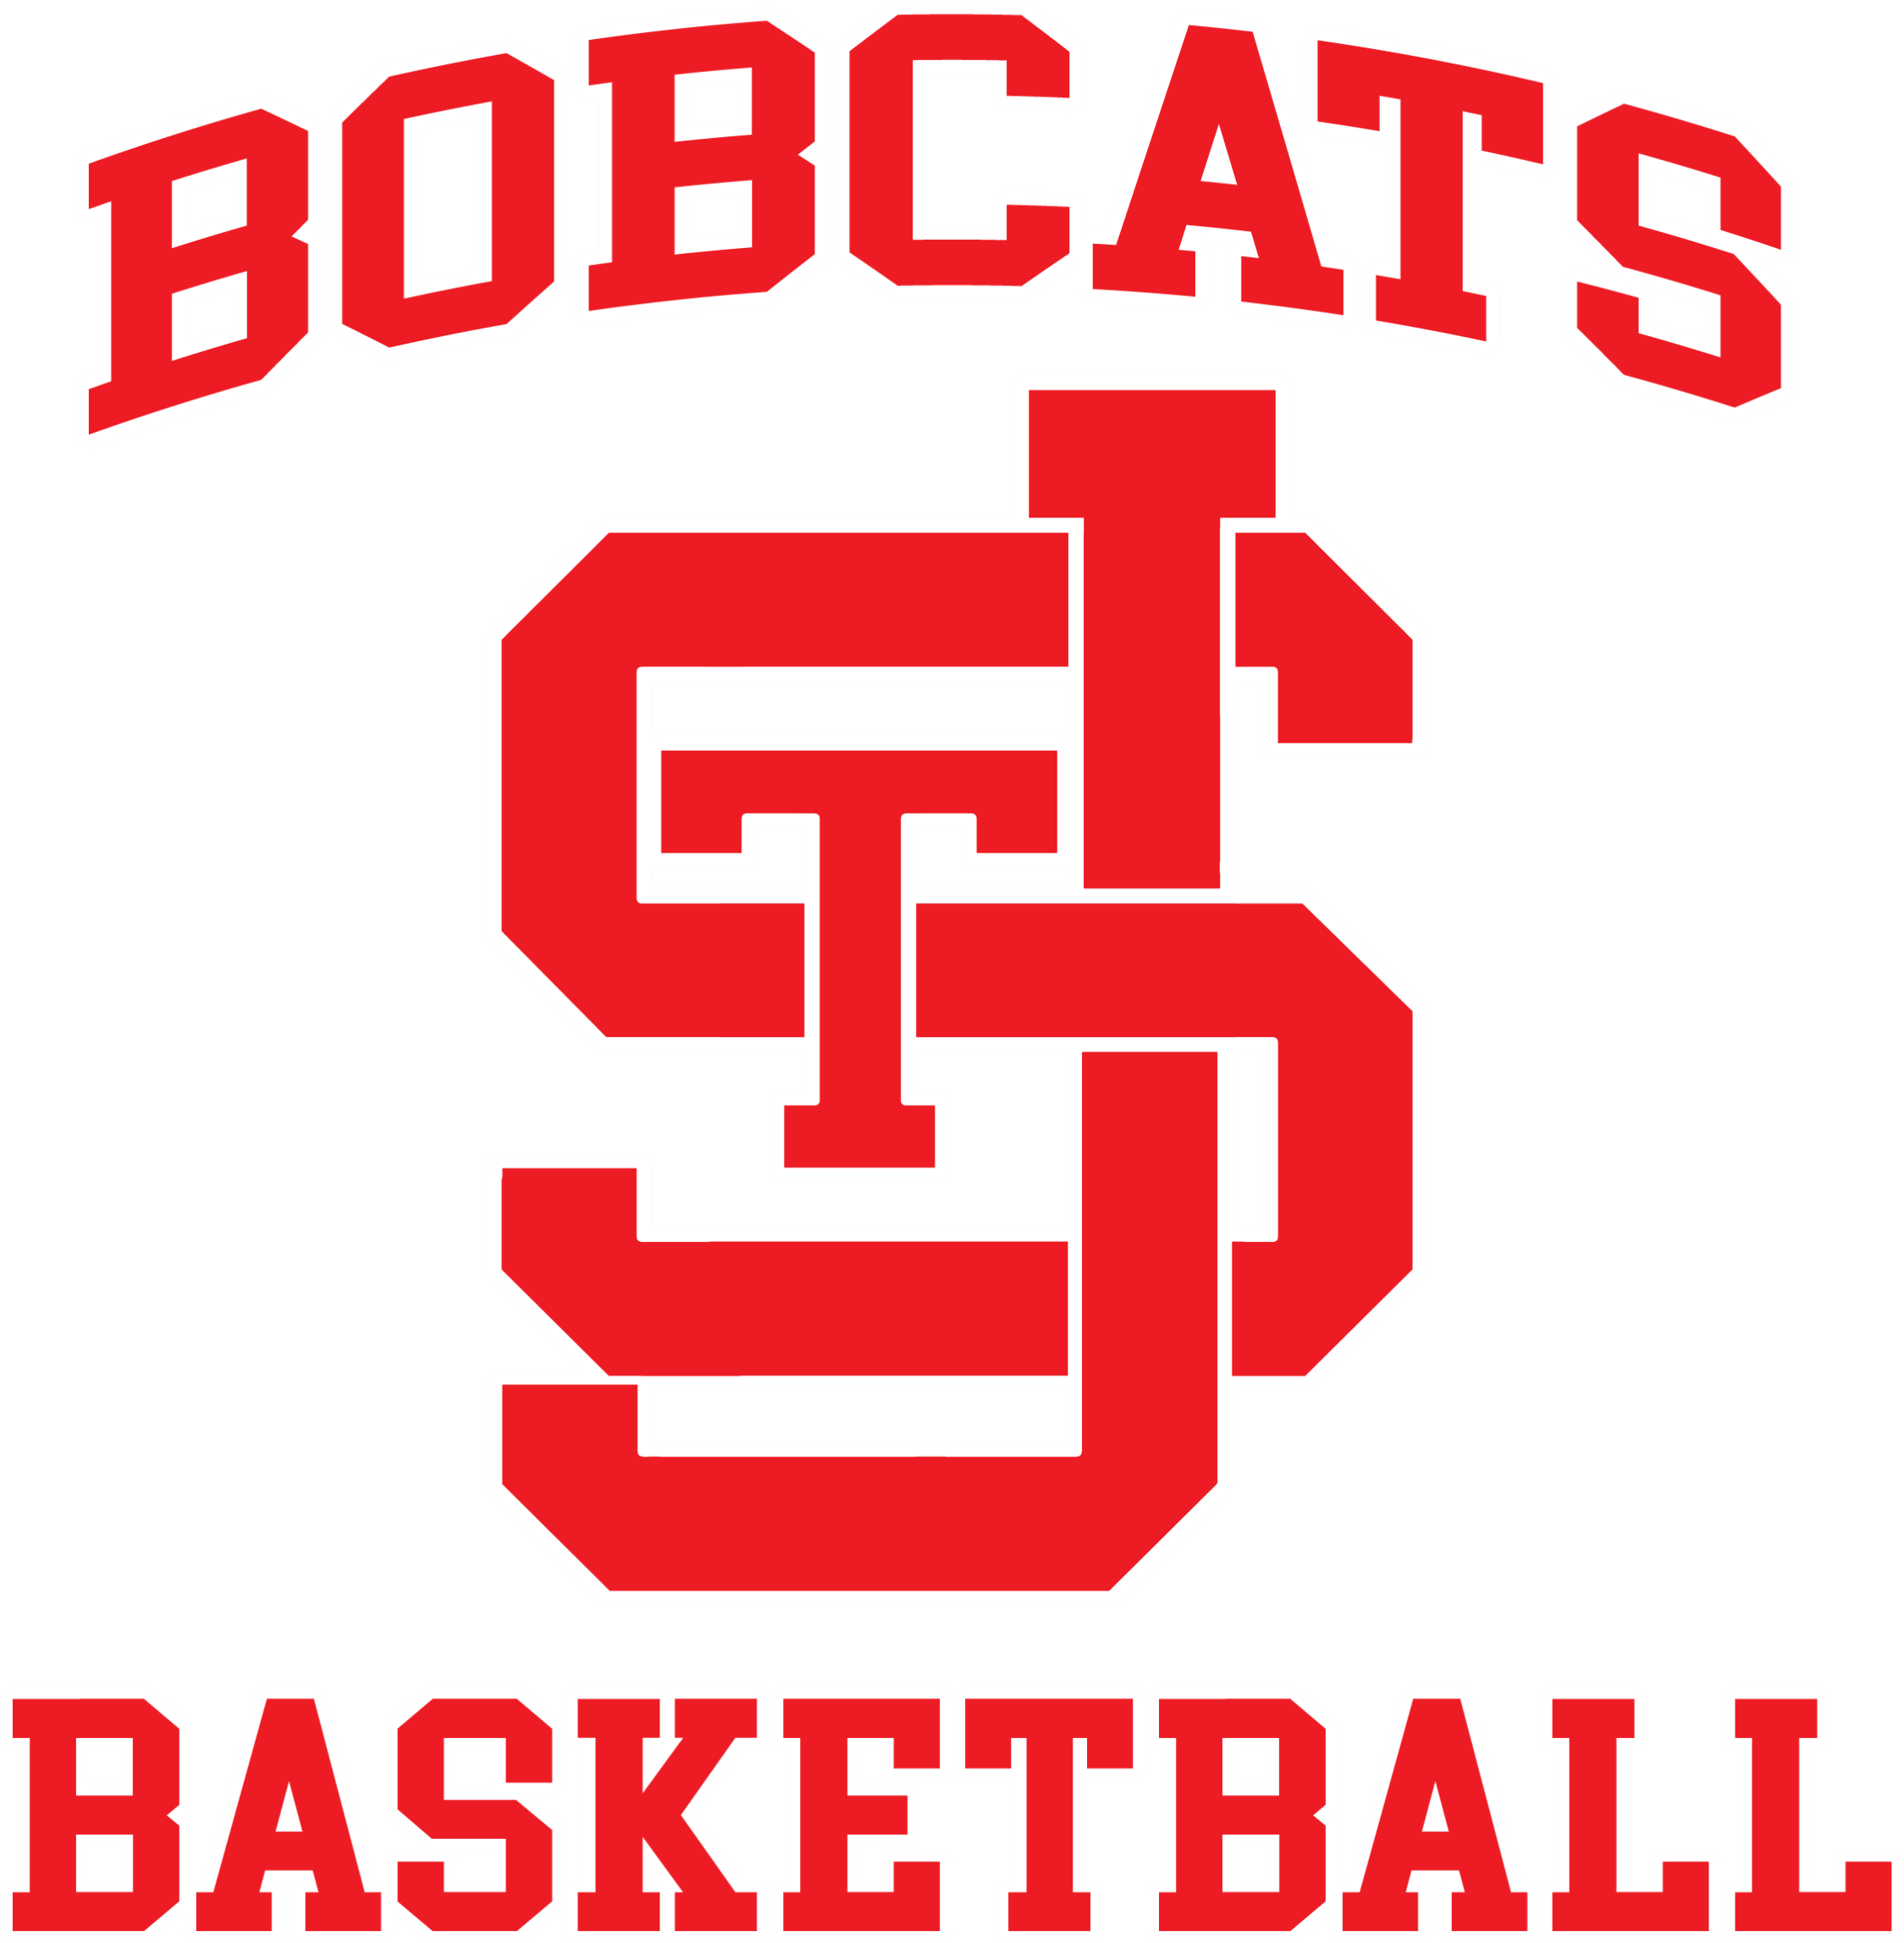 St Joe Bobcats Basketball